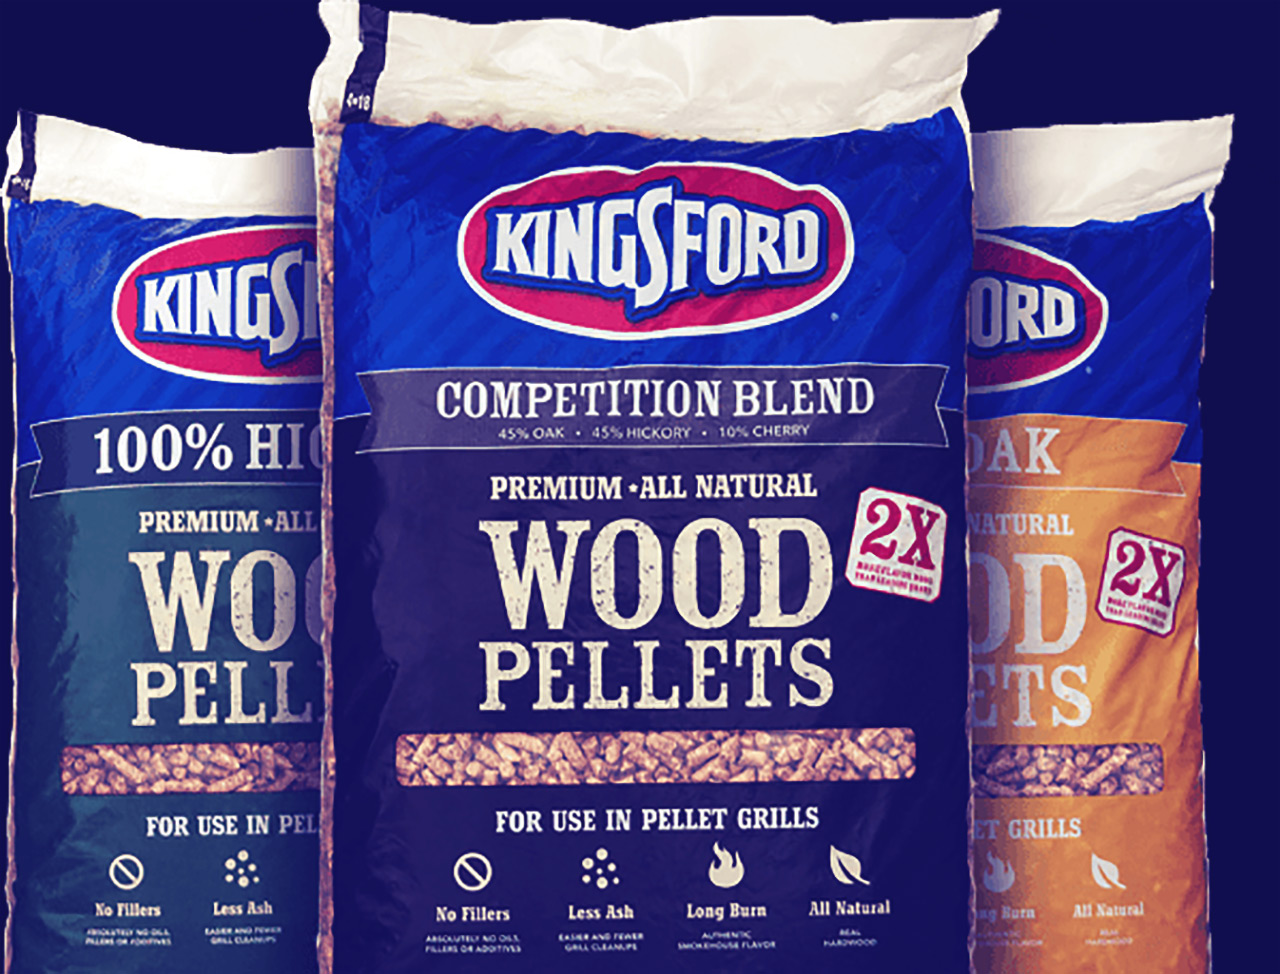 Kingsford Wood Pellets 2